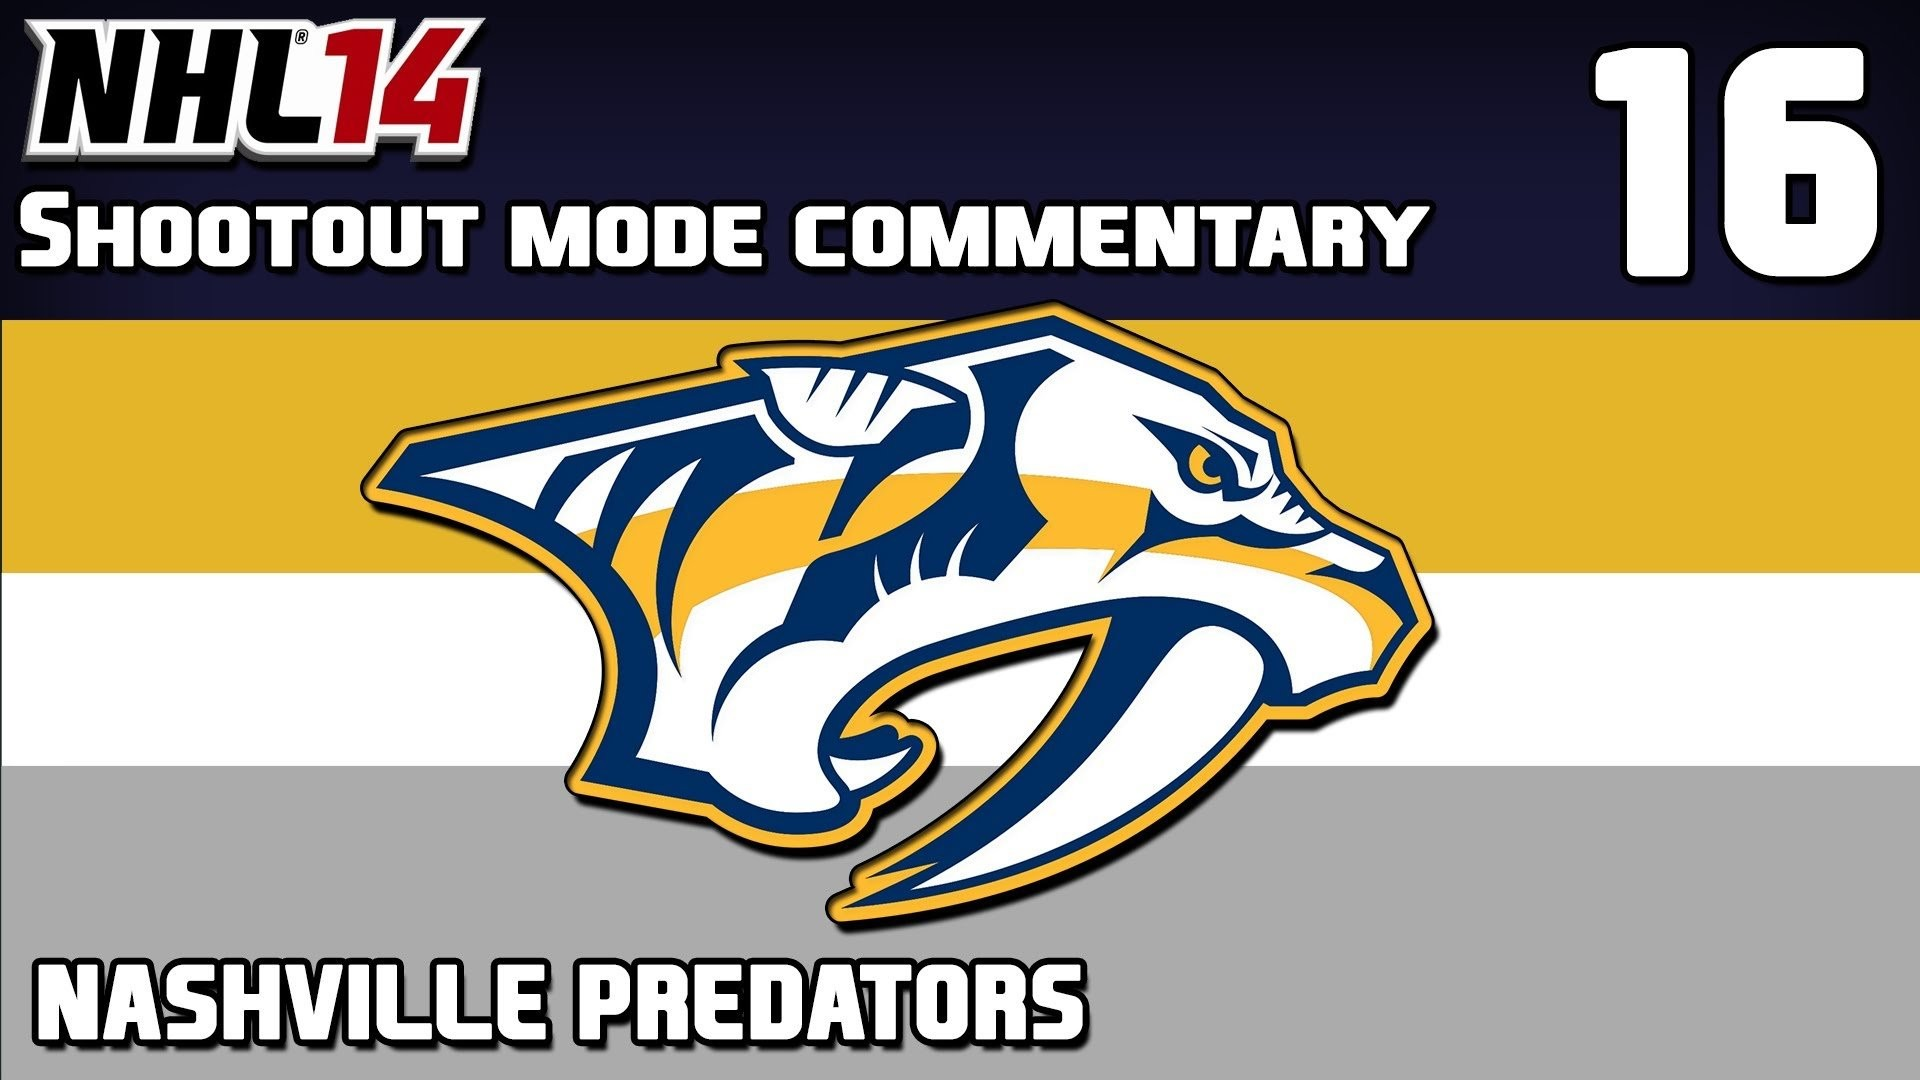 1920x1080 NASHVILLE PREDATORS nhl hockey (6) wallpaper |  | 323565 .